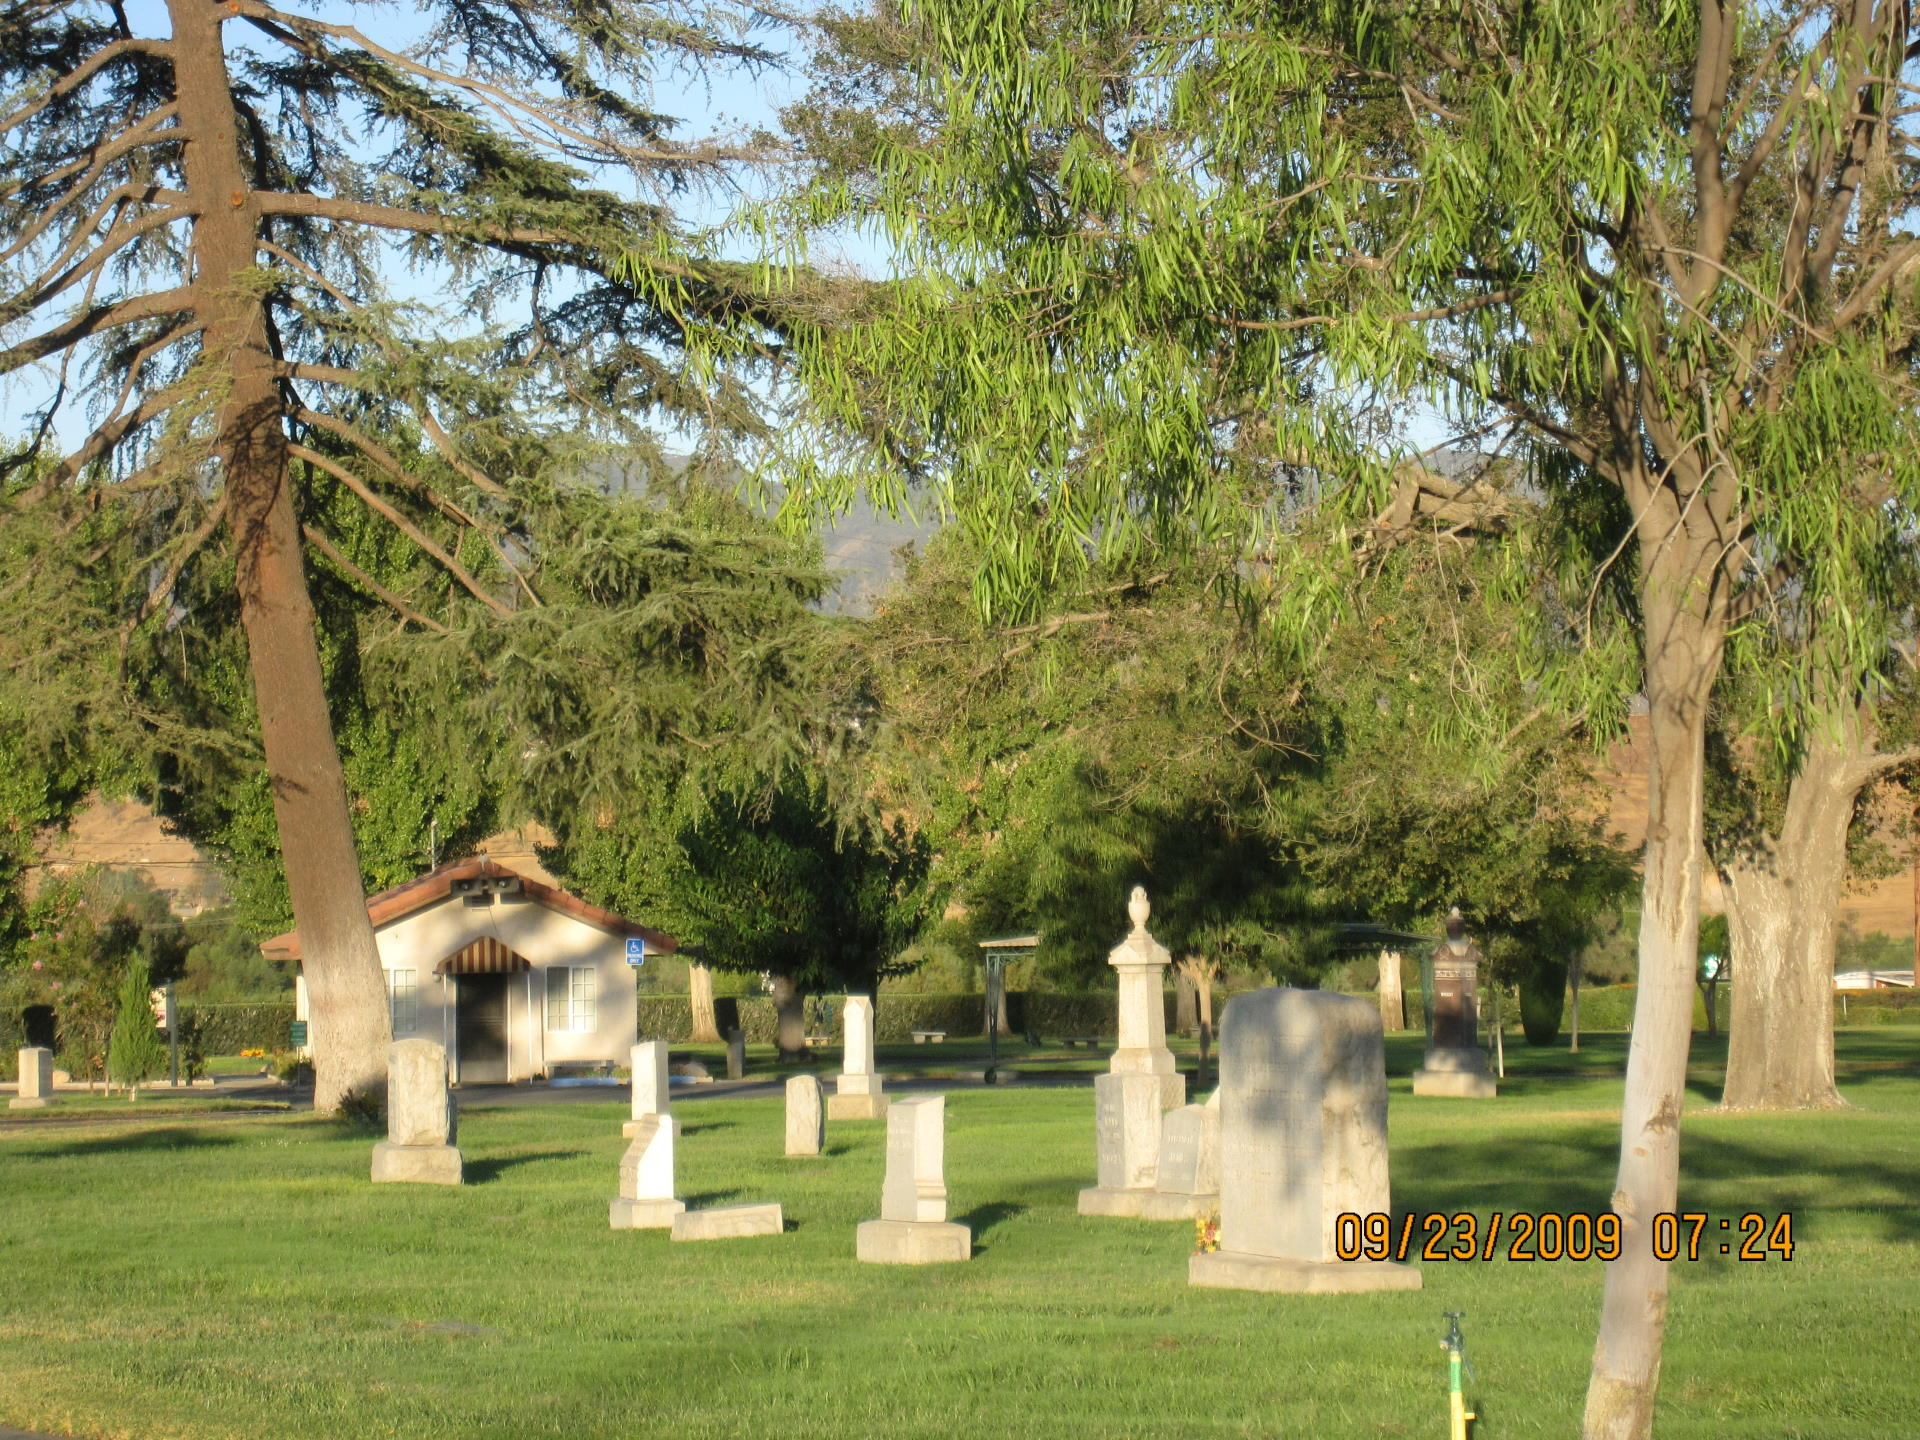 view of burial grounds with tall headstones